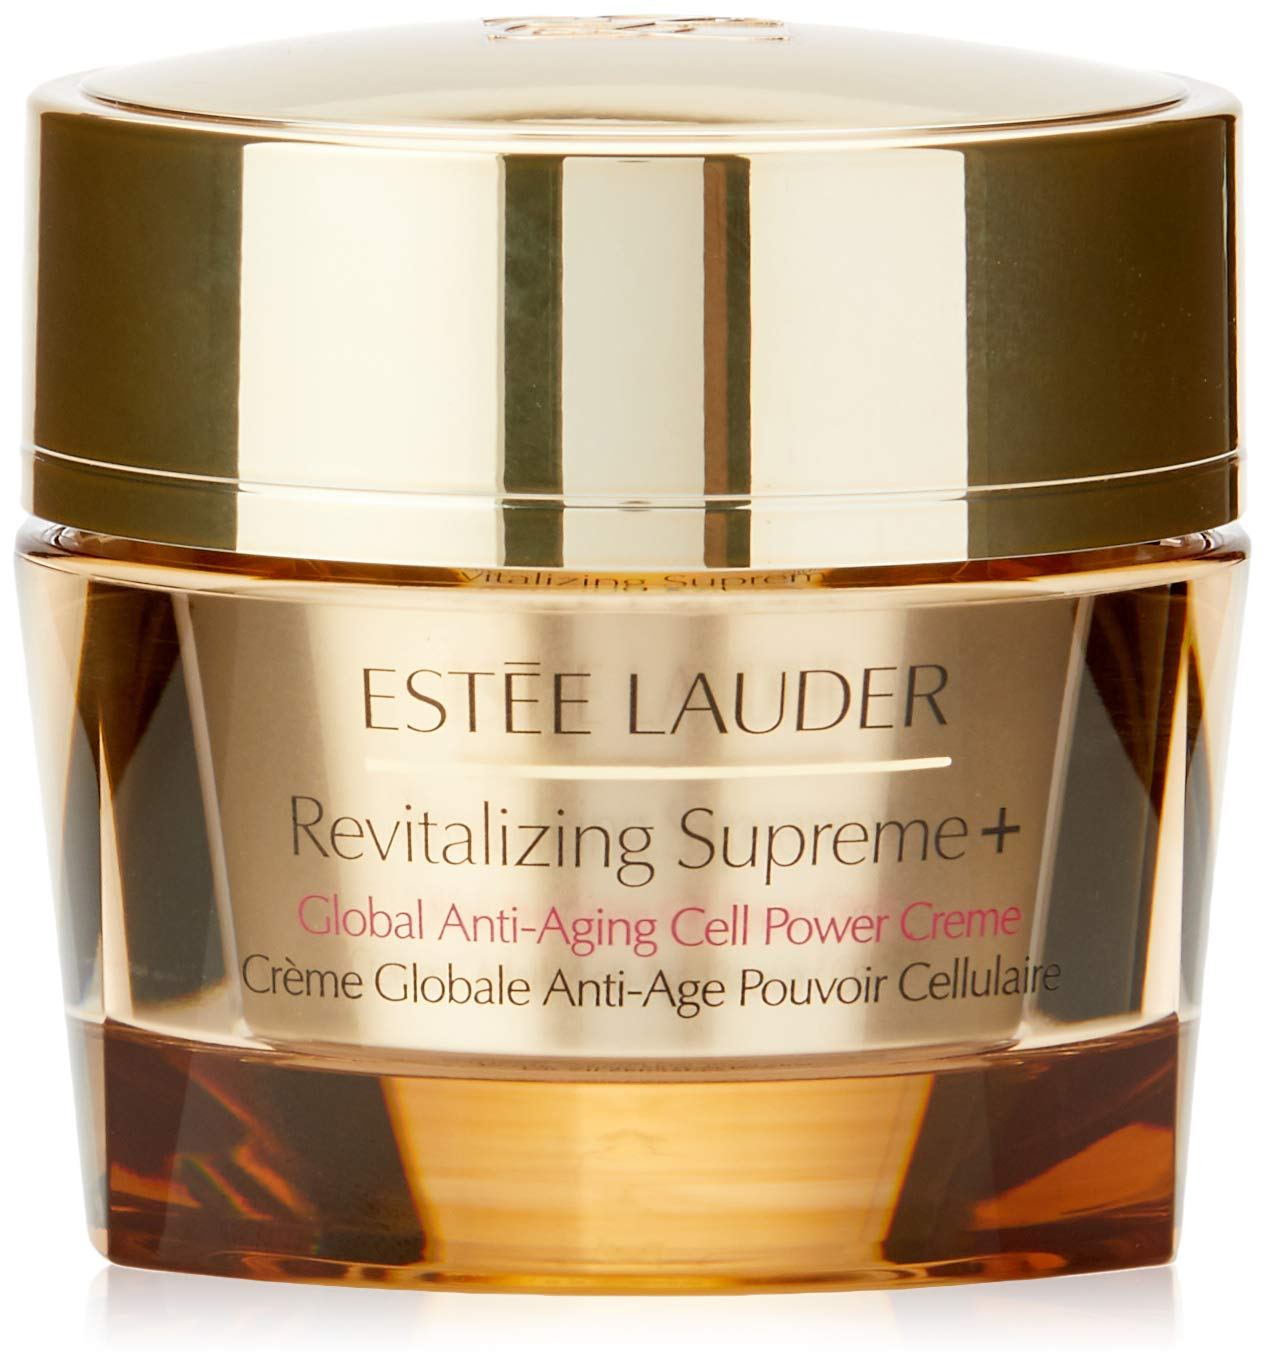 Estee Lauder Revitalizing Supreme + Global Anti-Aging Cell Power Creme, 1.7 Ounce